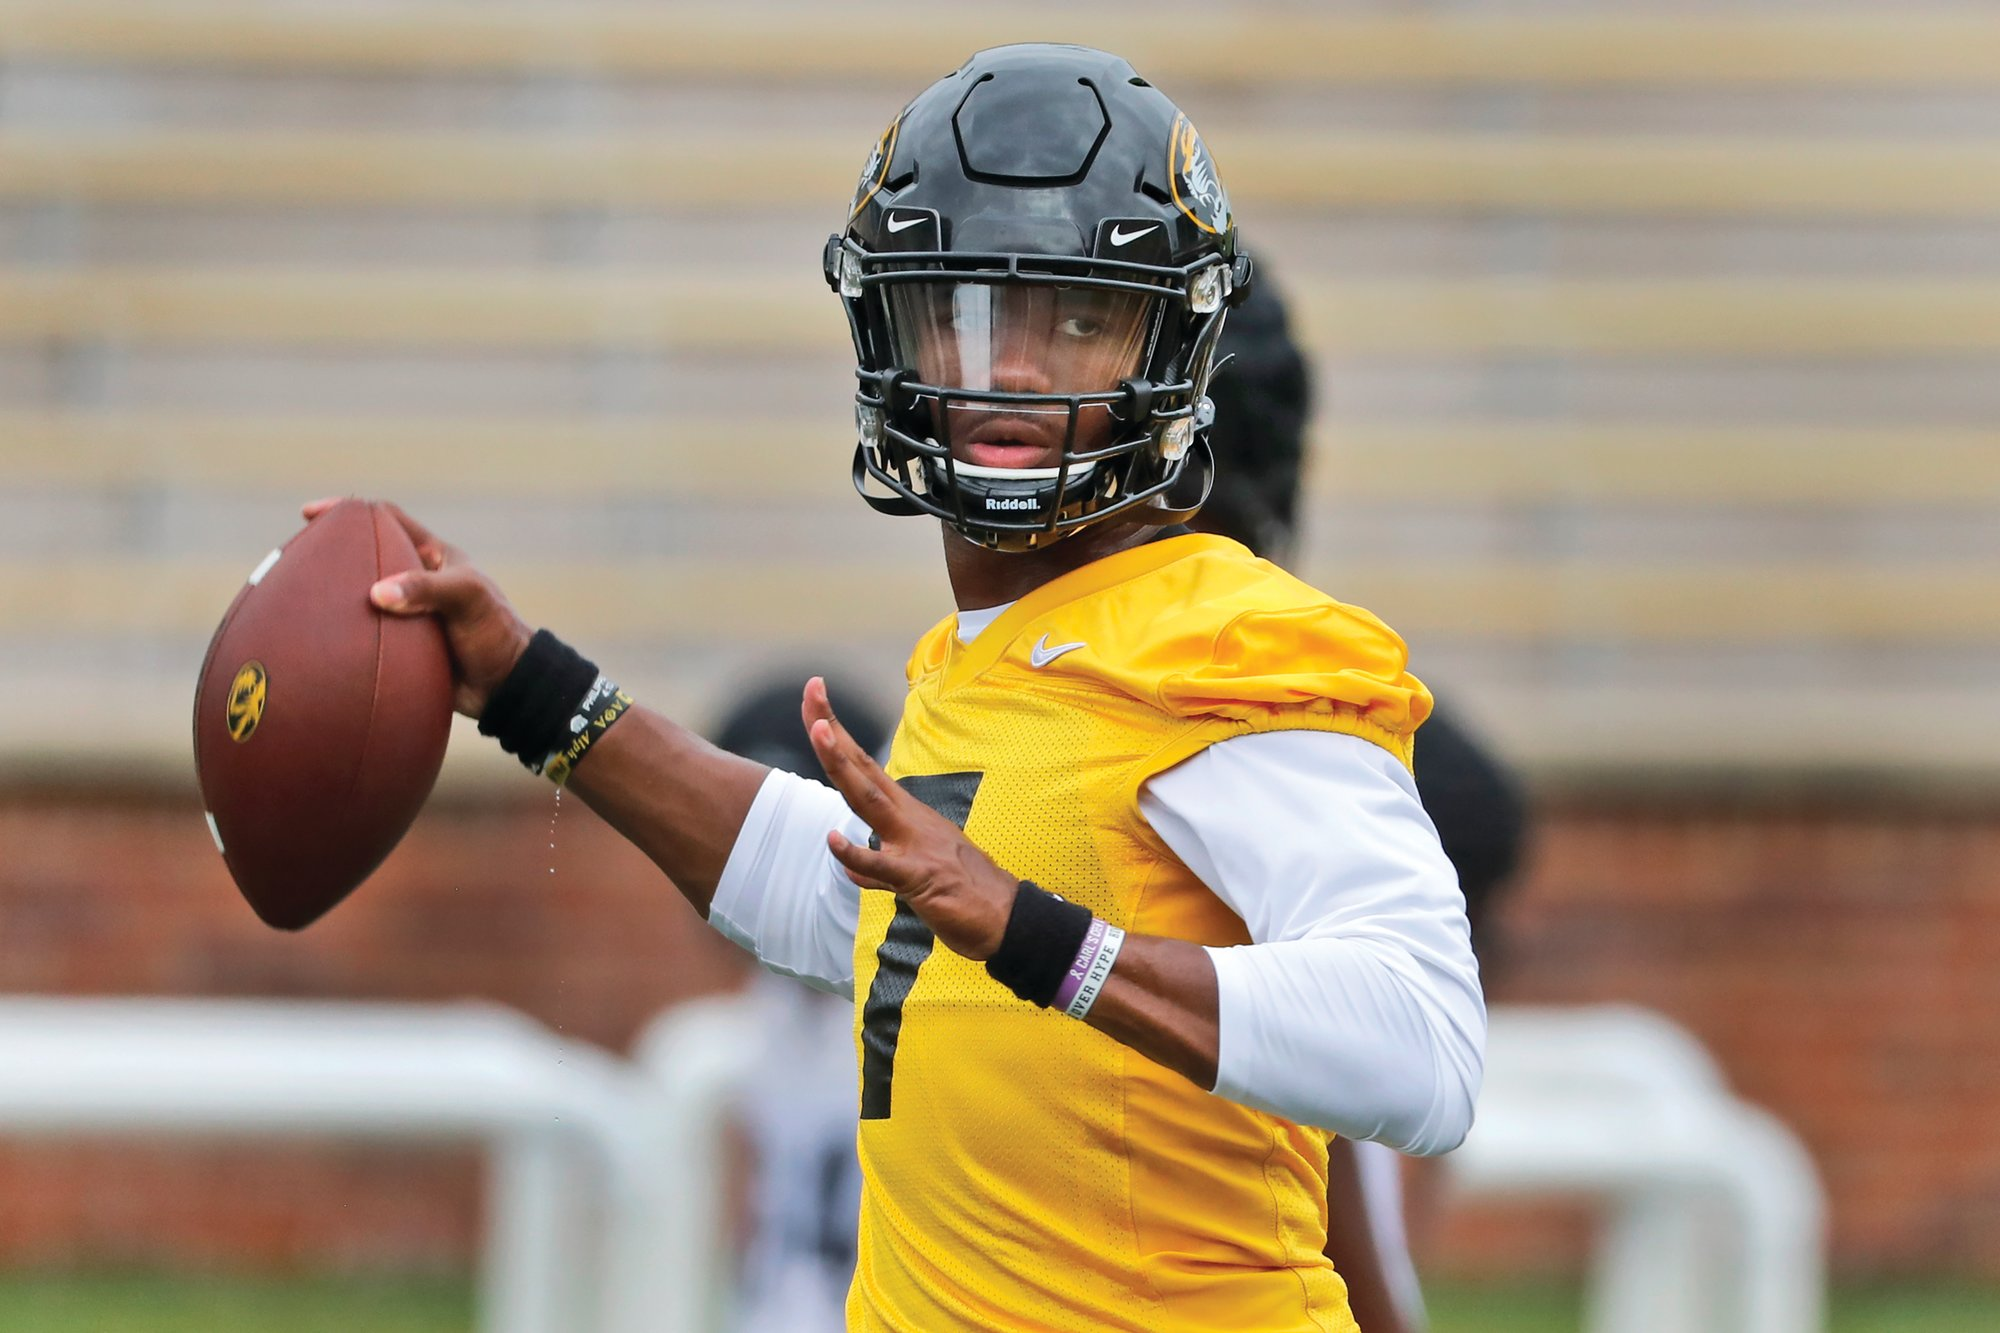 THE ASSOCIATED PRESS  Missouri quarterback Kelly Bryant throws during a practice in Columbia, Missouri. Bryant came to Missouri as a graduate transfer from Clemson University.